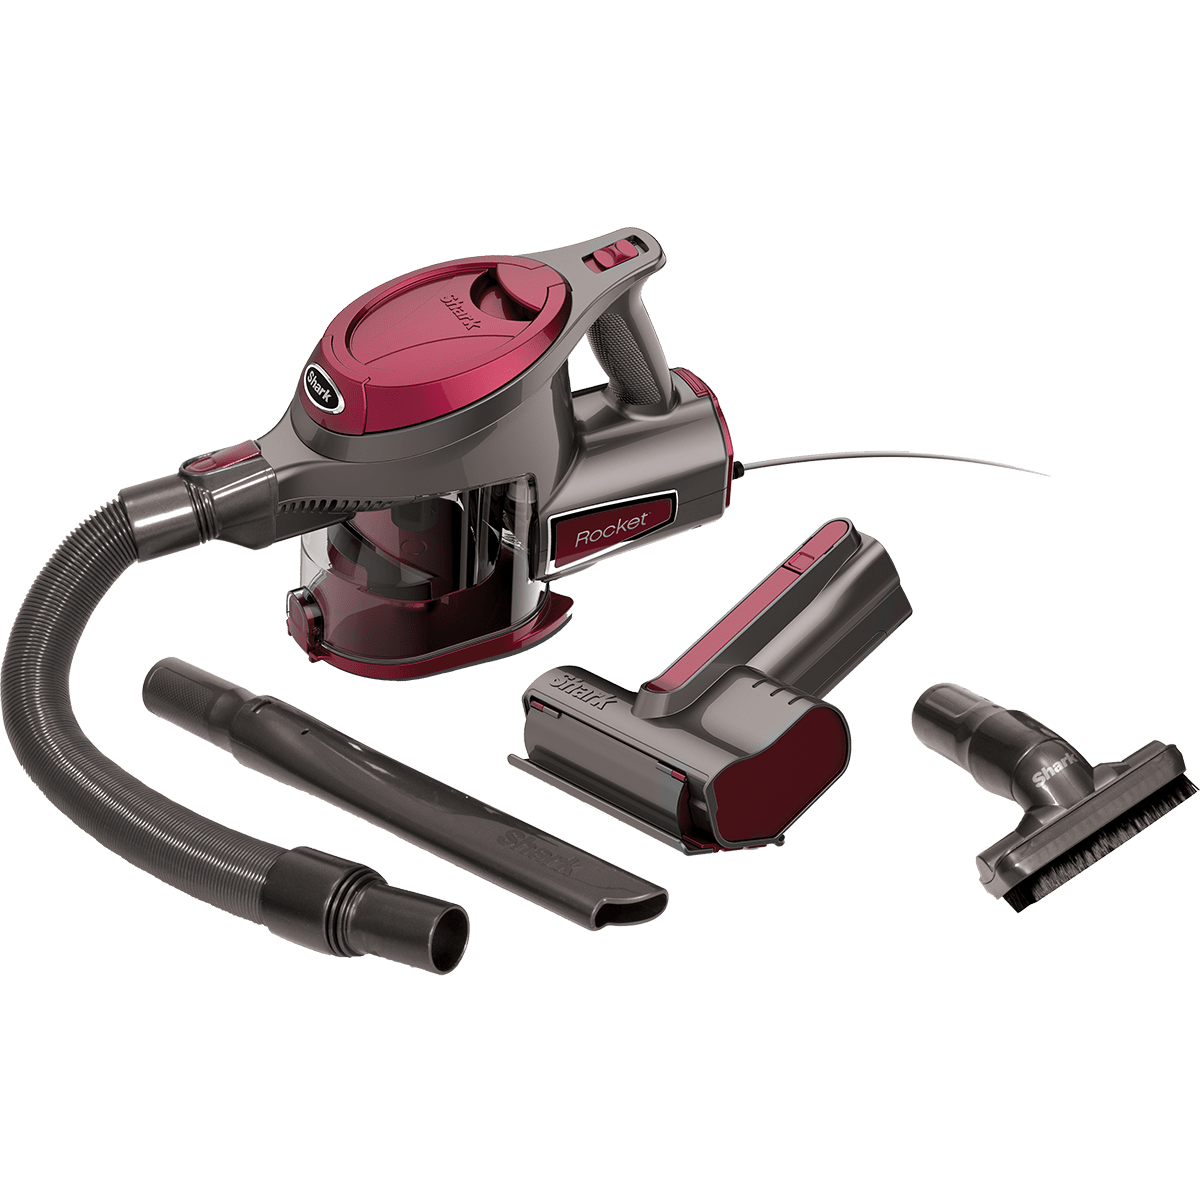 shark rocket handheld vacuum hv292 - Shark Vacuum Cleaner